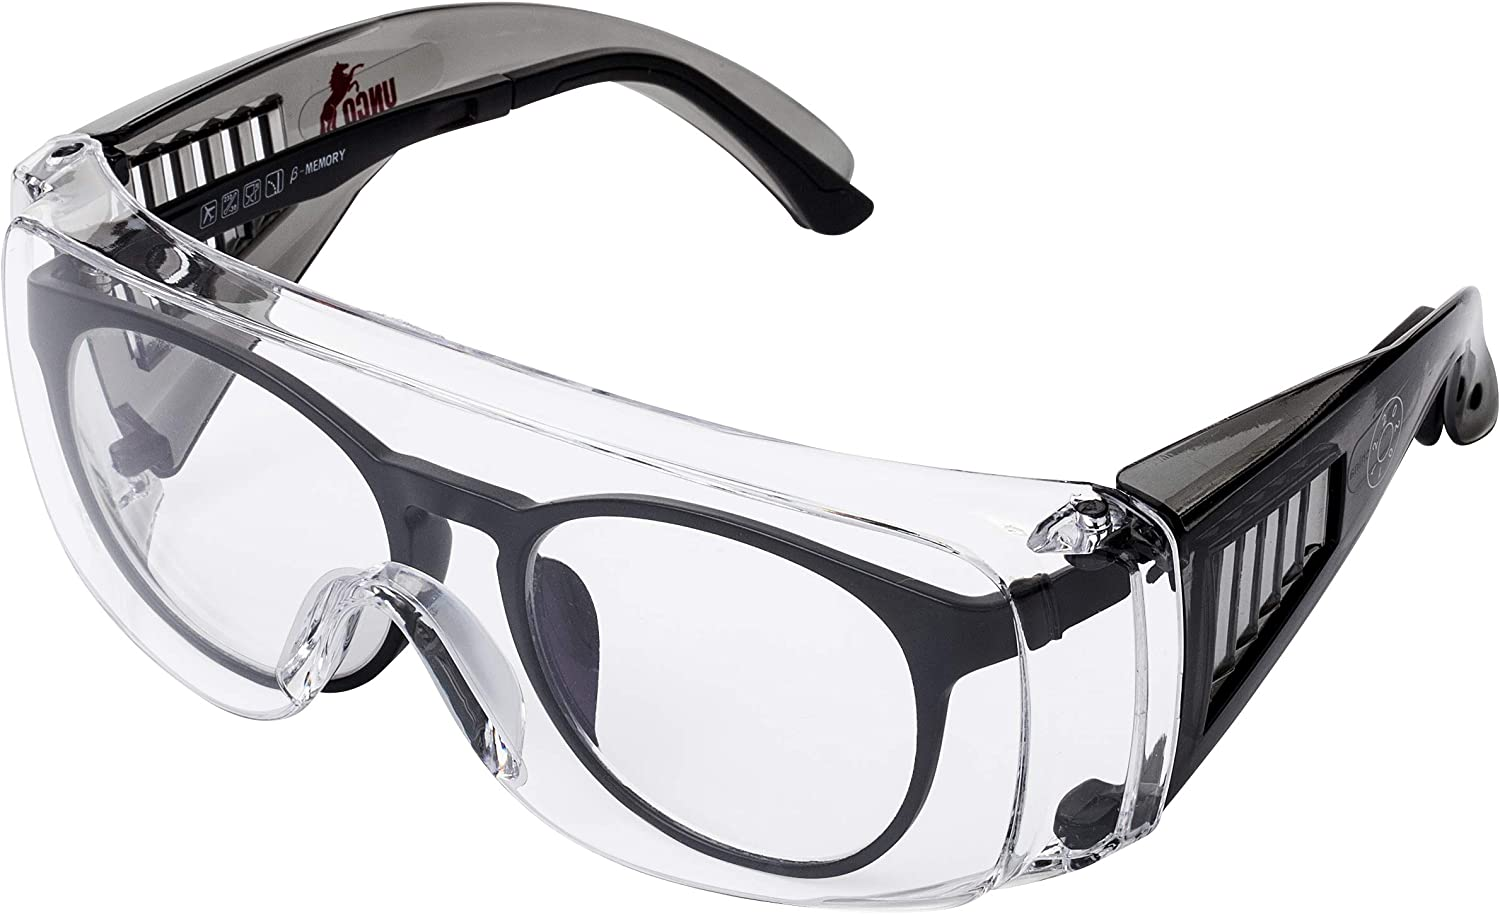 UNCO- Purchase Safety Goggles Over Japan's largest assortment Go Protective Glasses